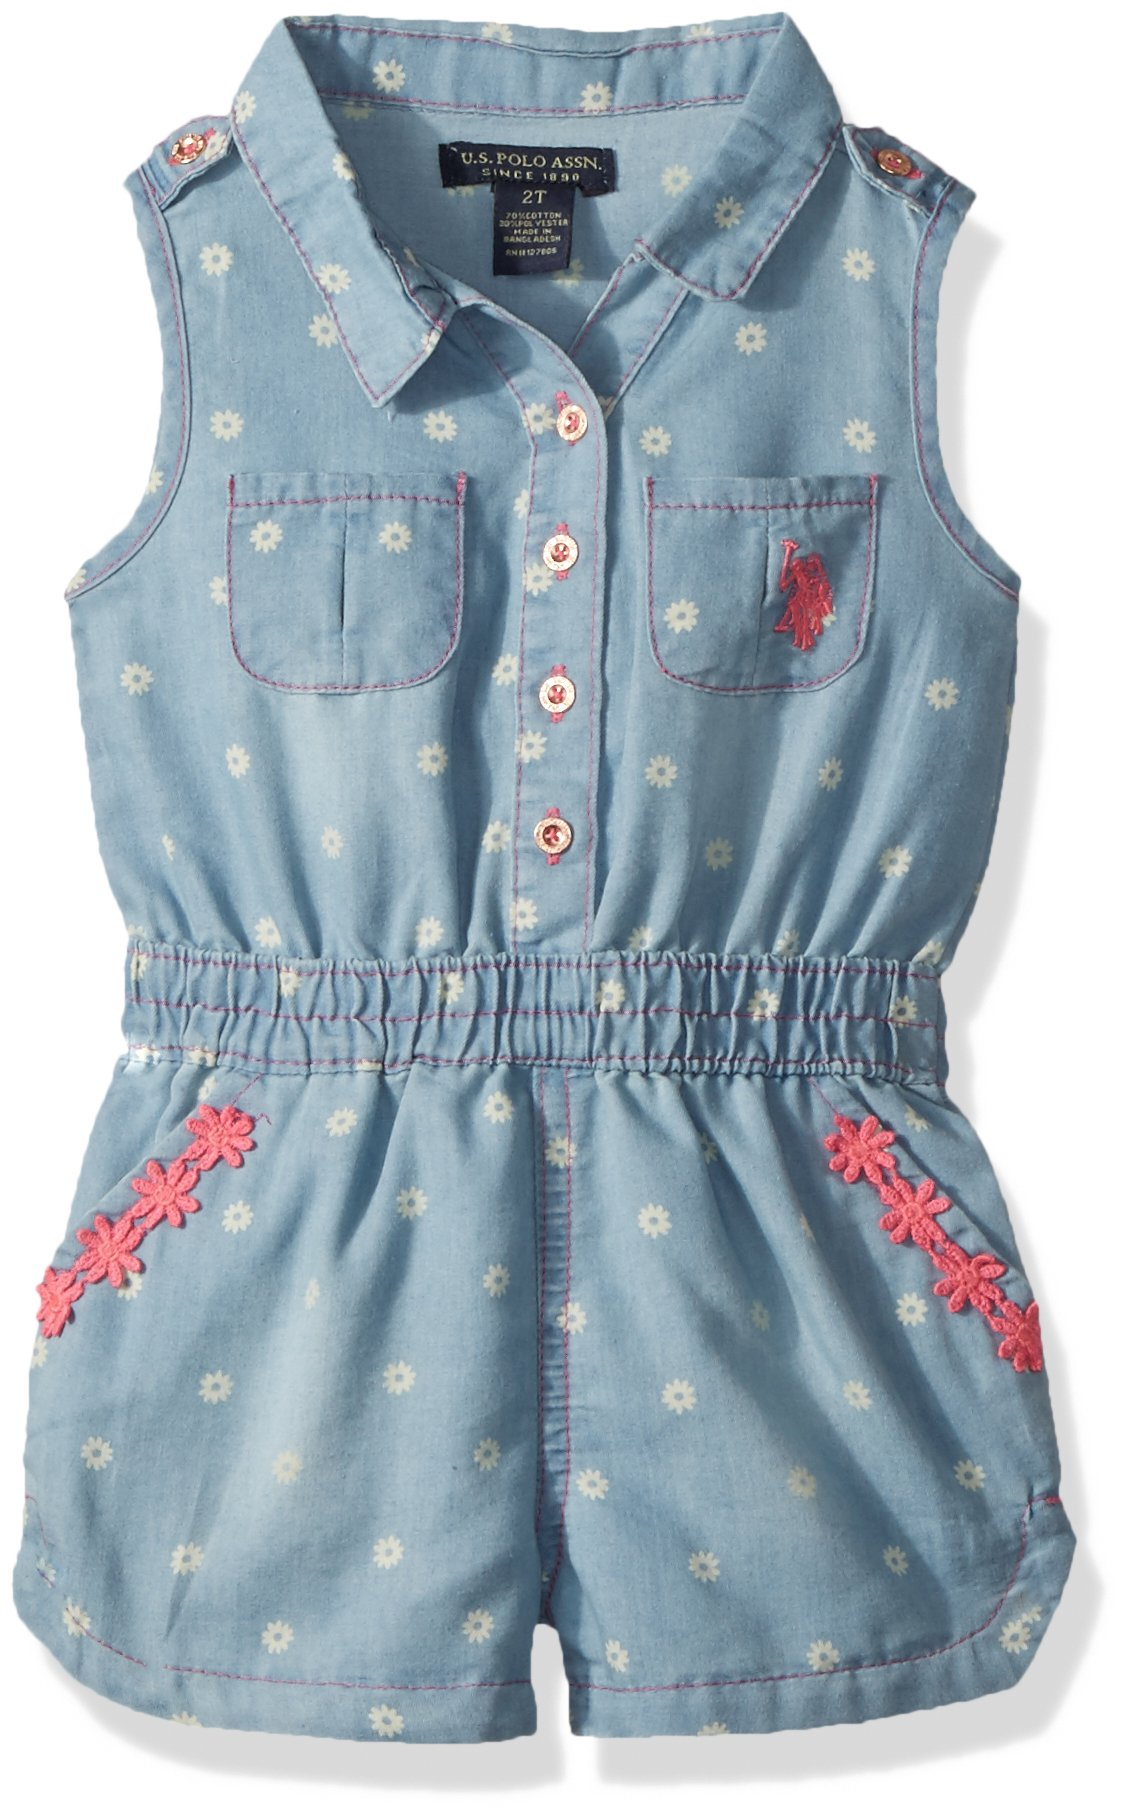 U.S. Polo Assn. Big Girls' Romper, Button Front Daisy Trim Light Wash, 10